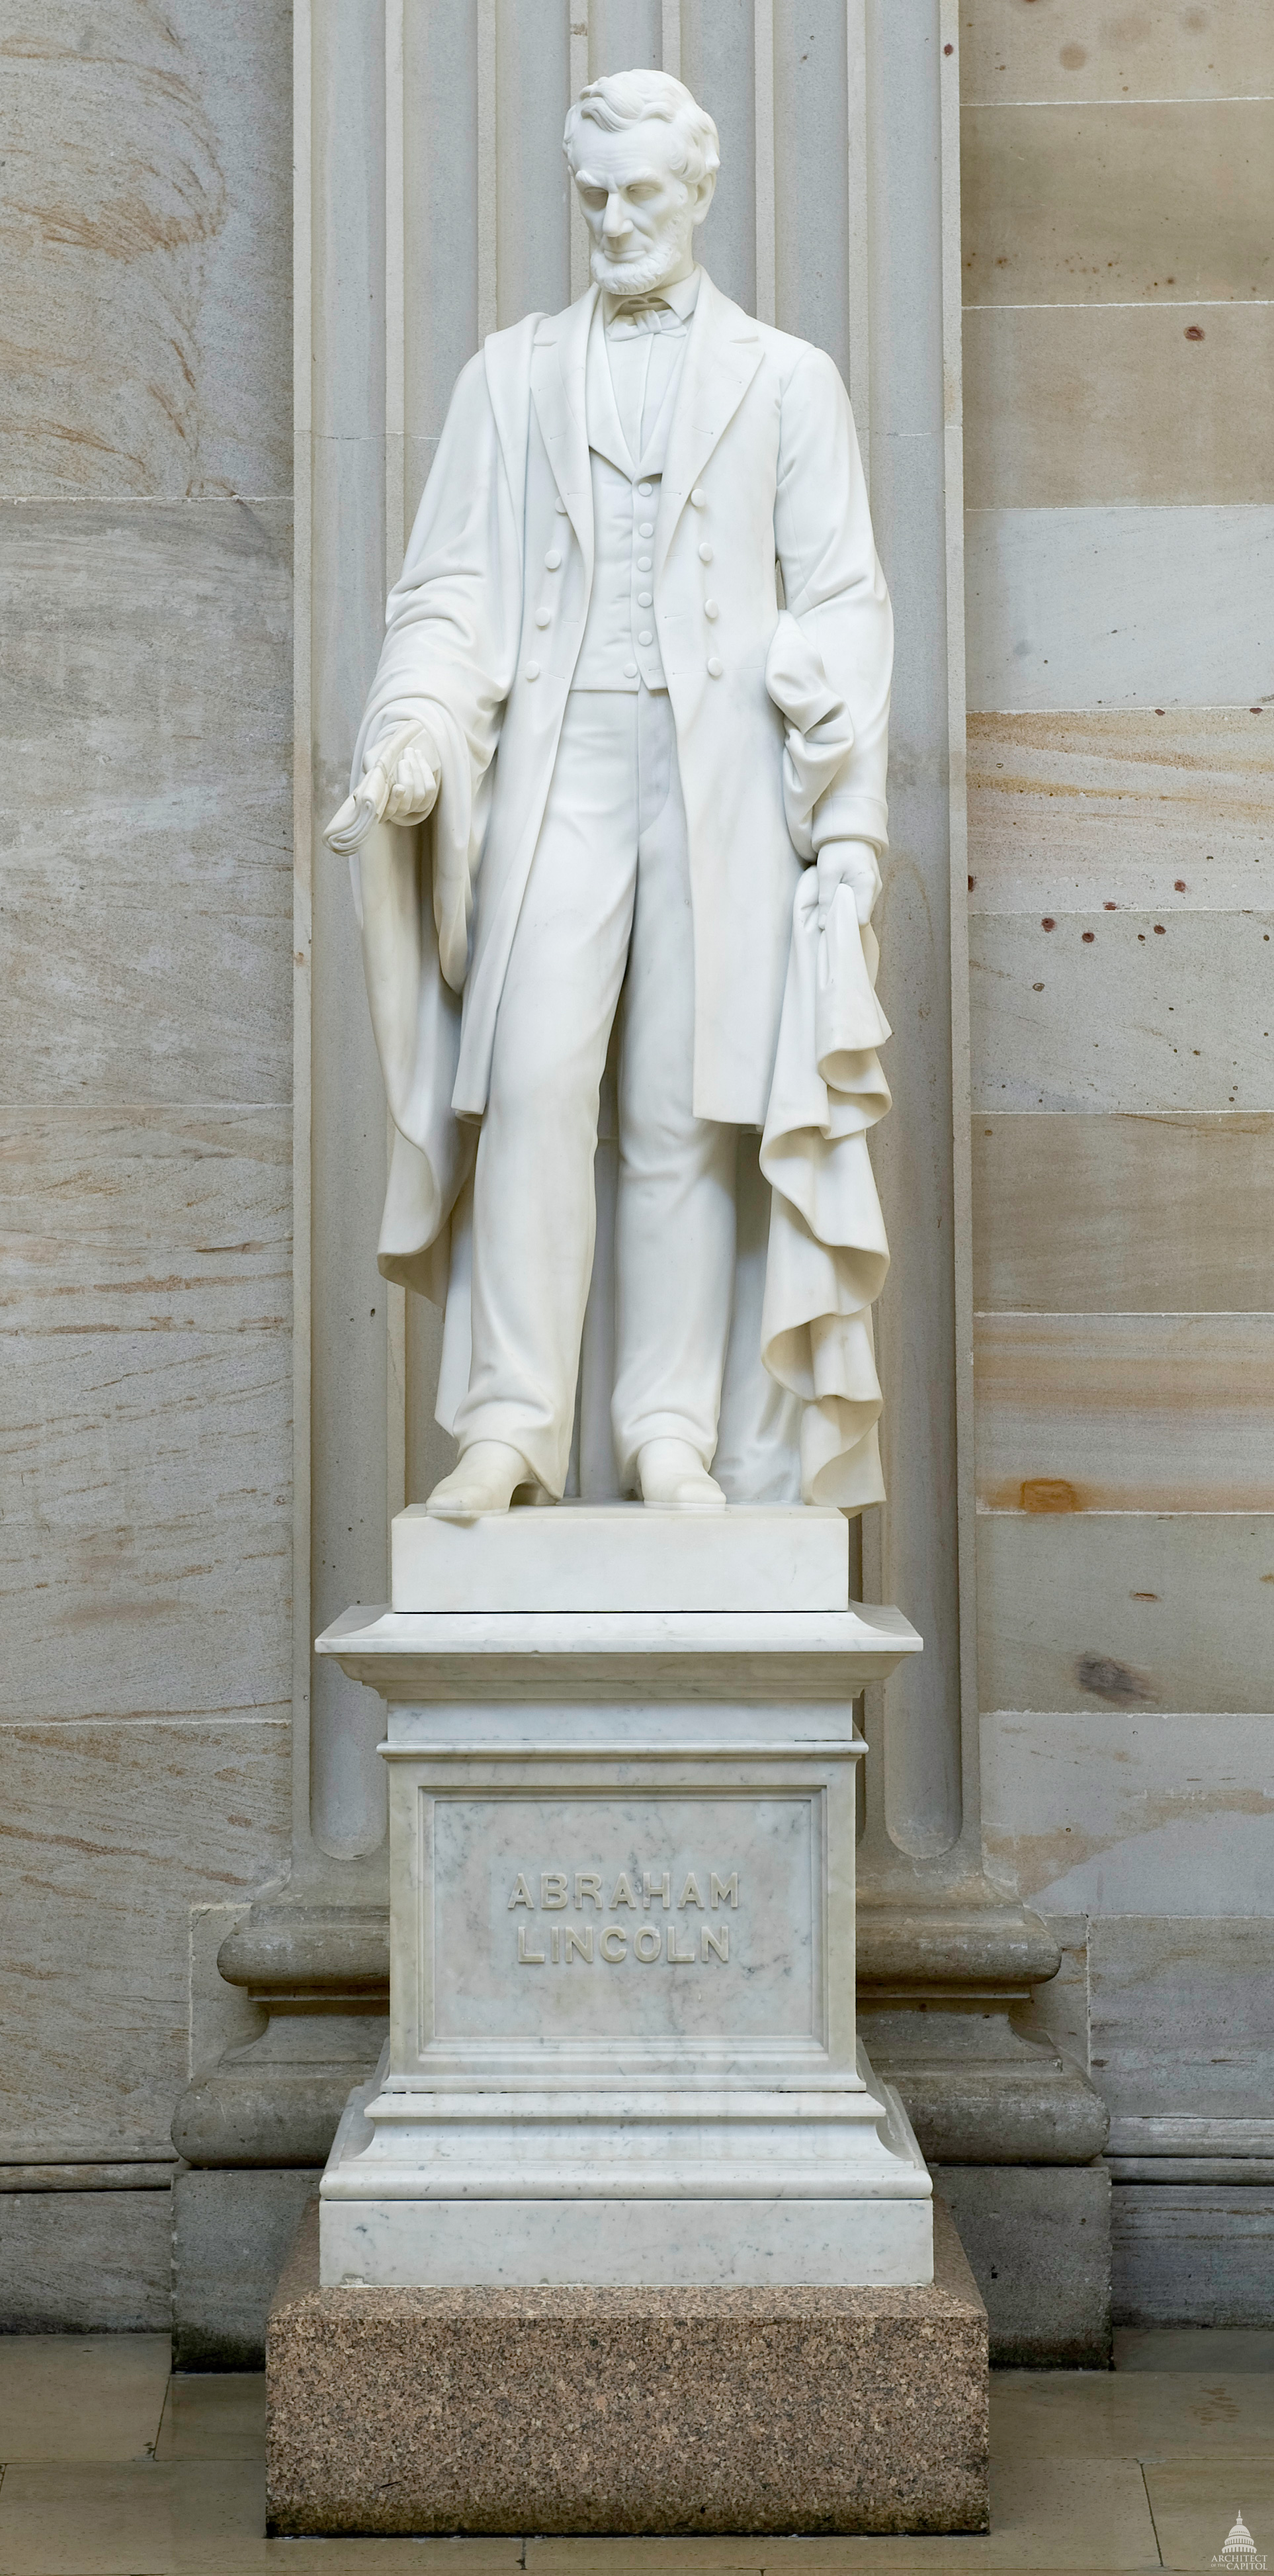 Abraham Lincoln Statue Architect Of The Capitol United